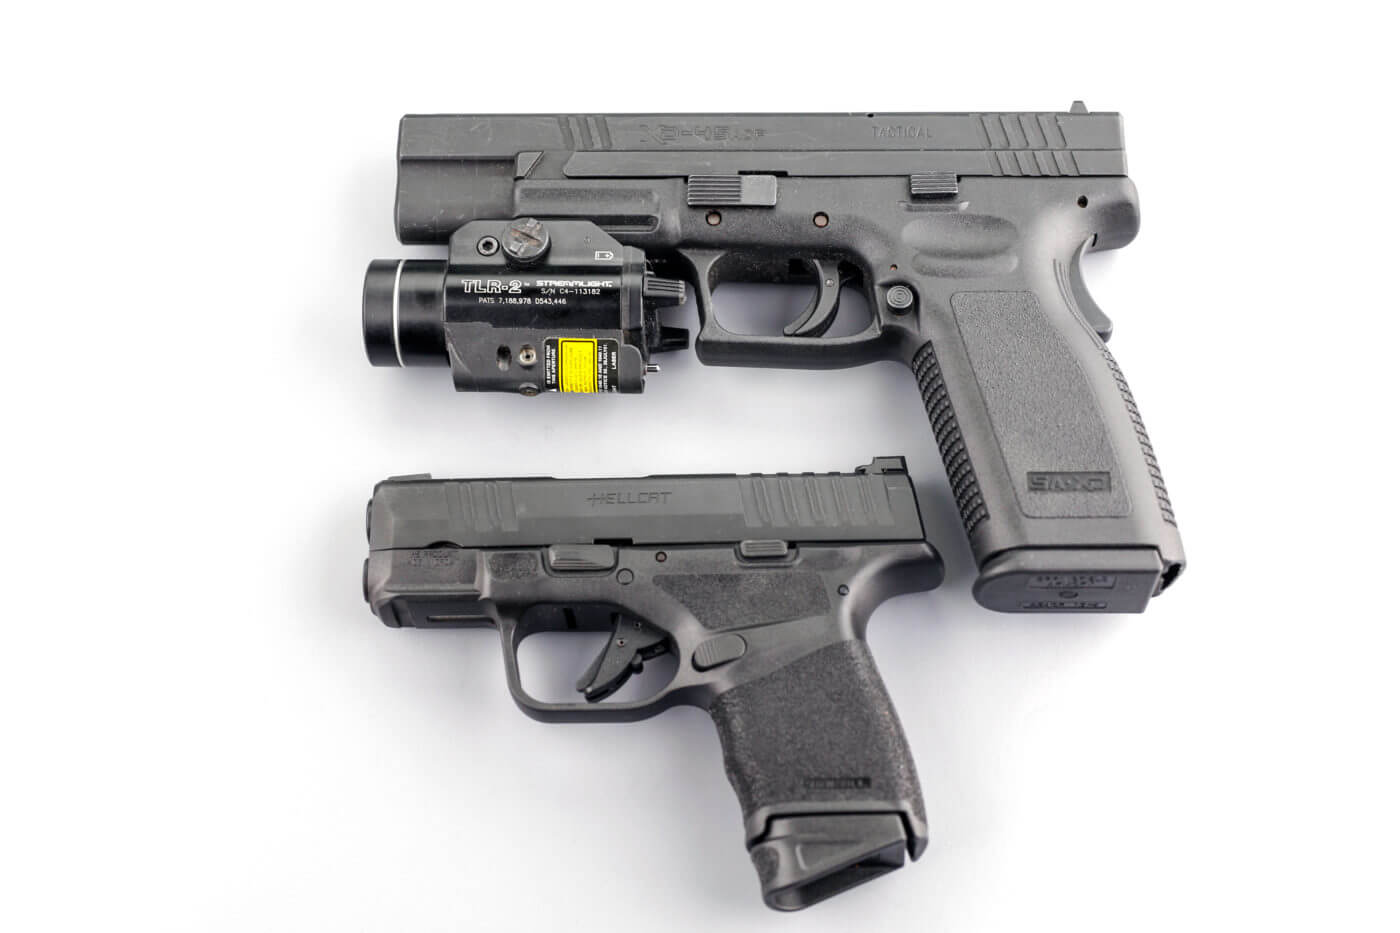 Compared to a full-size XD service pistol, the Hellcat is noticeably more compact